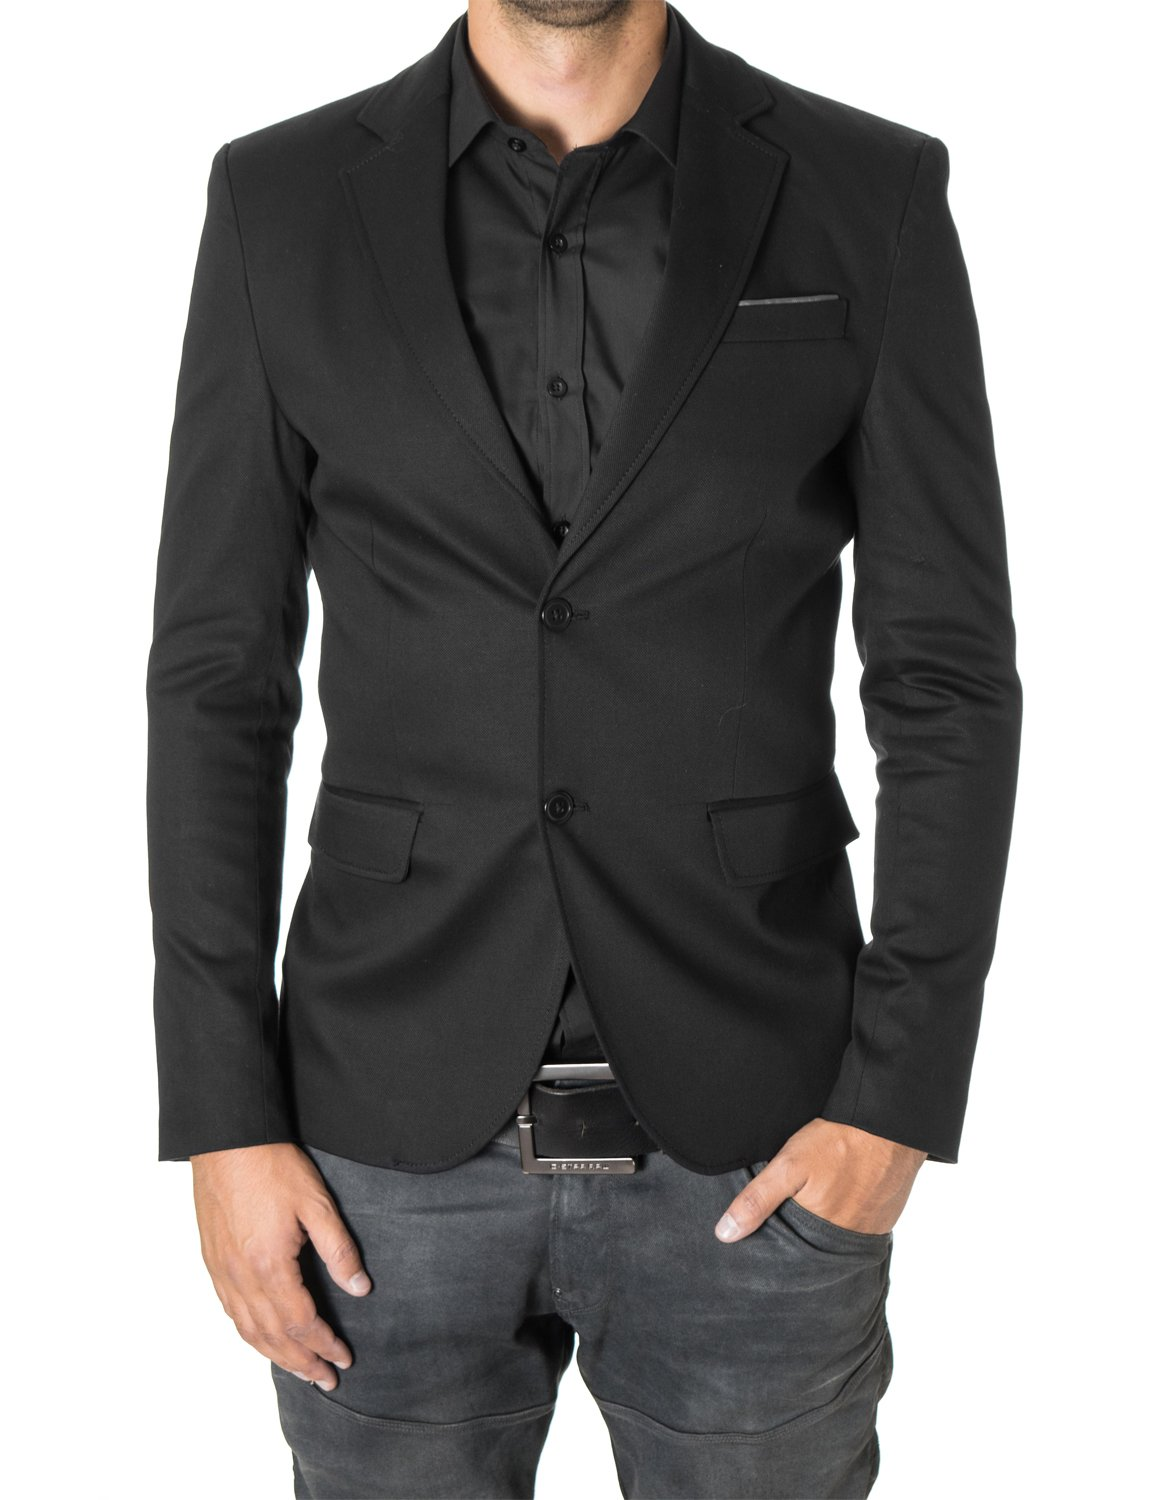 MODERNO Mens Blazer Casual Slim Fit 2 Buttons Cotton Sport Coat (MOD14517B) Black US L